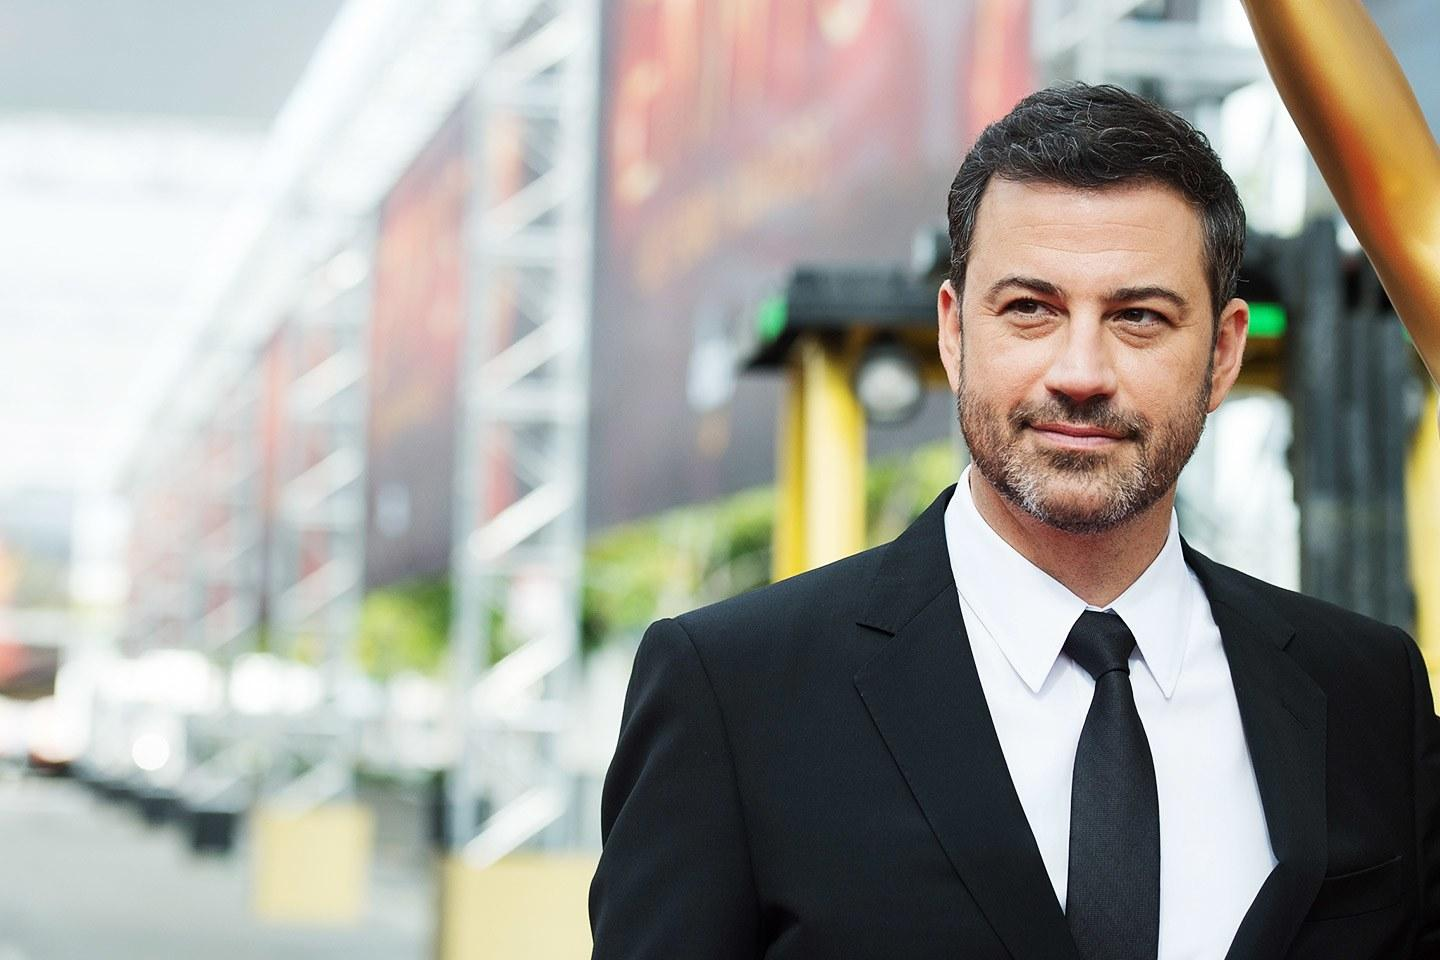 Jimmy Kimmel Updates Fans On His Son's Health